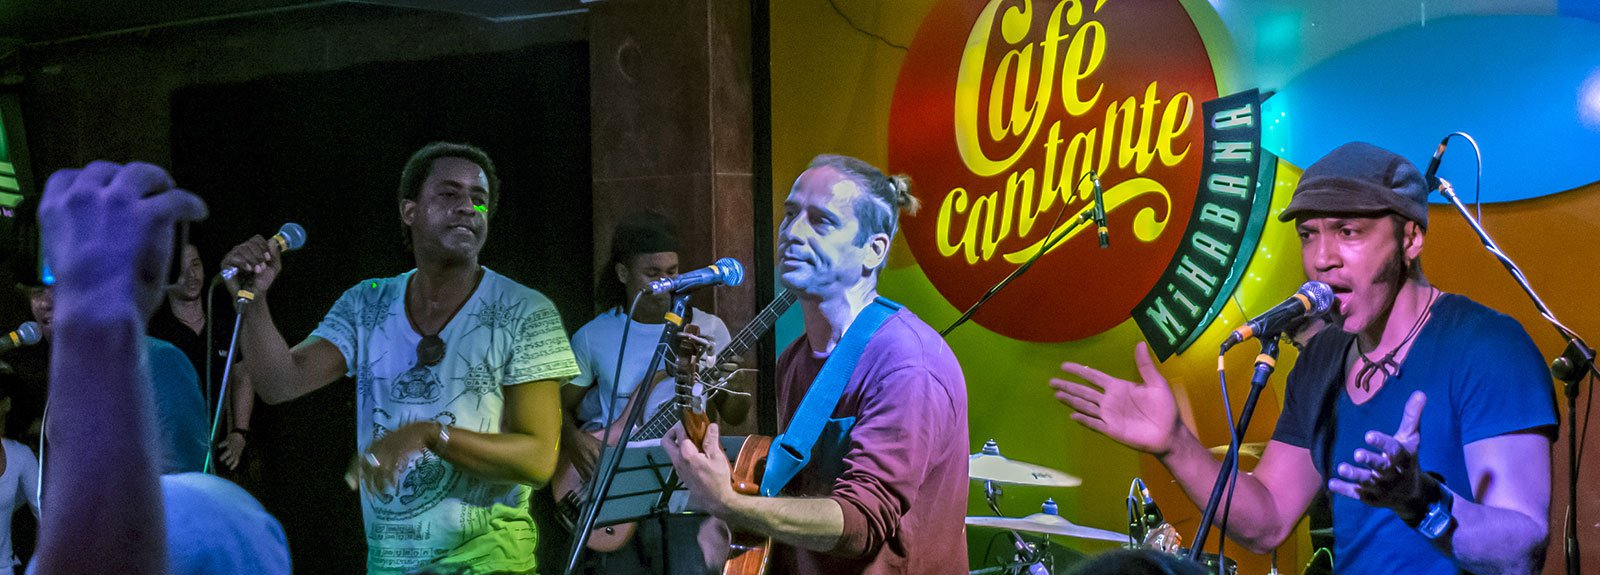 Habana abierta in concert at Cafe cantante